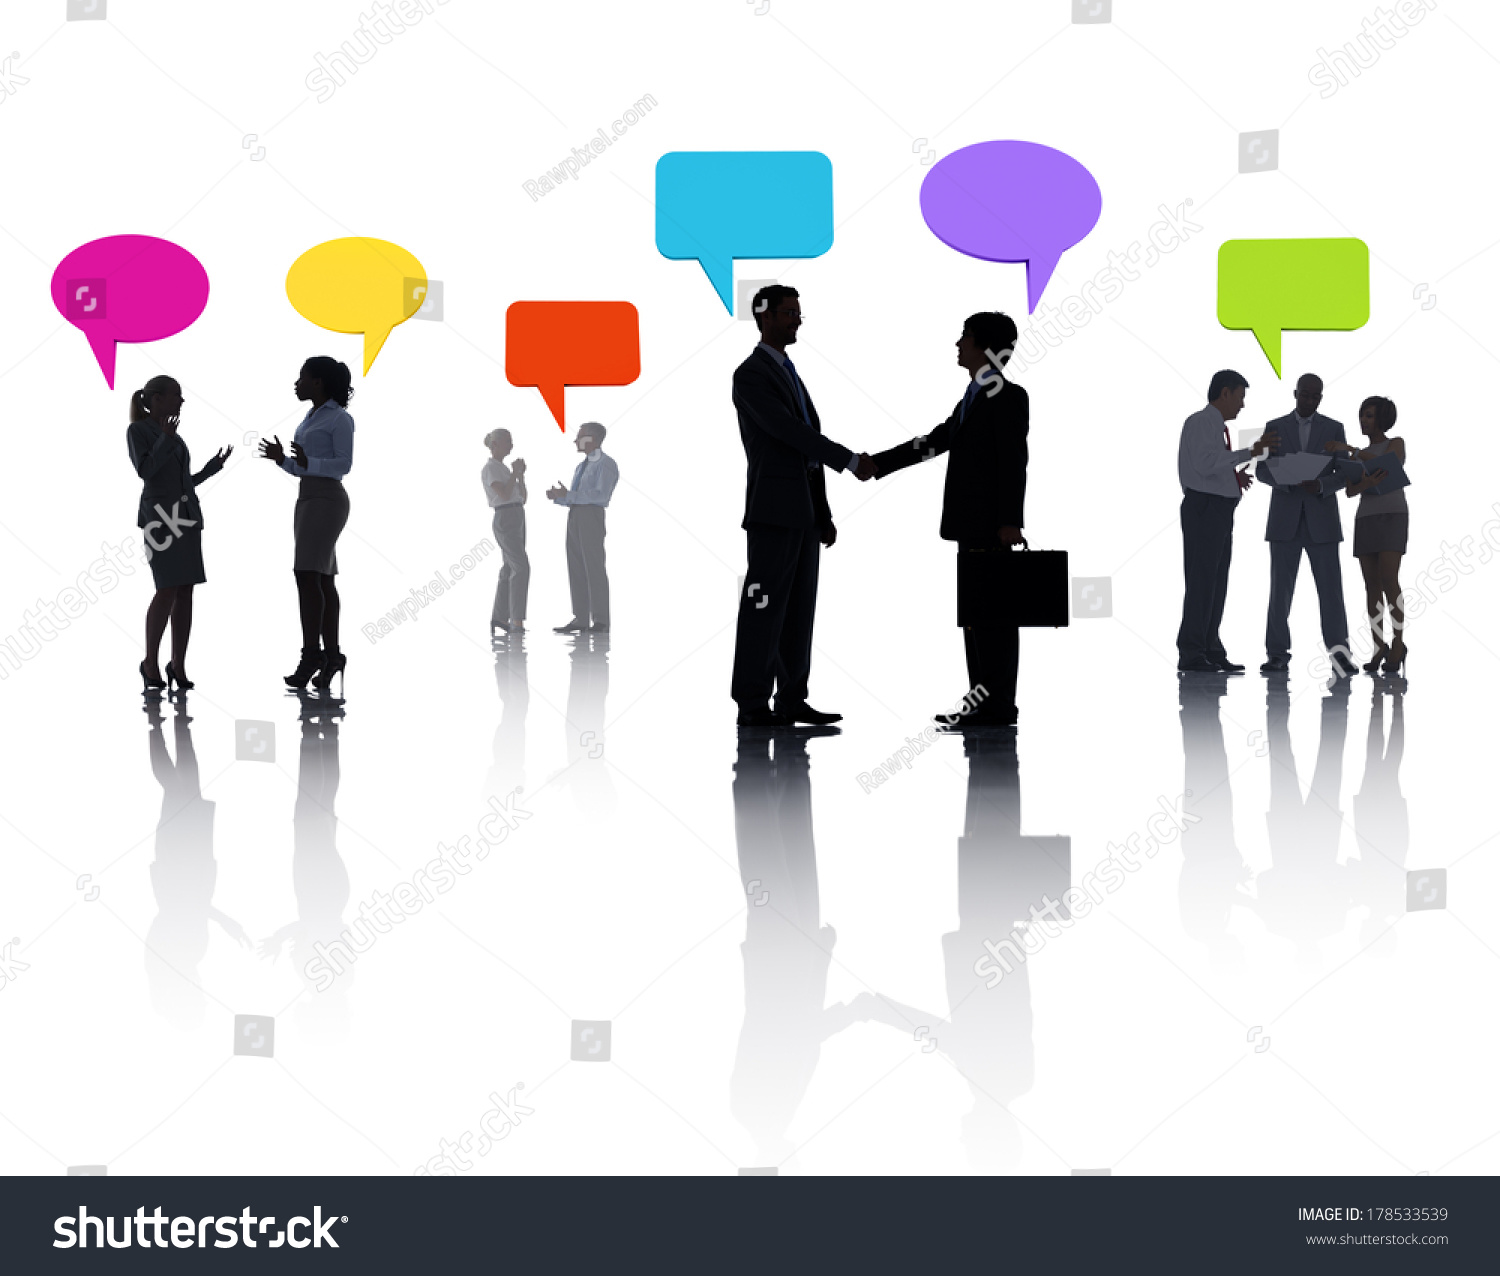 greeting people Download greeting people stock photos affordable and search from millions of royalty free images, photos and vectors.